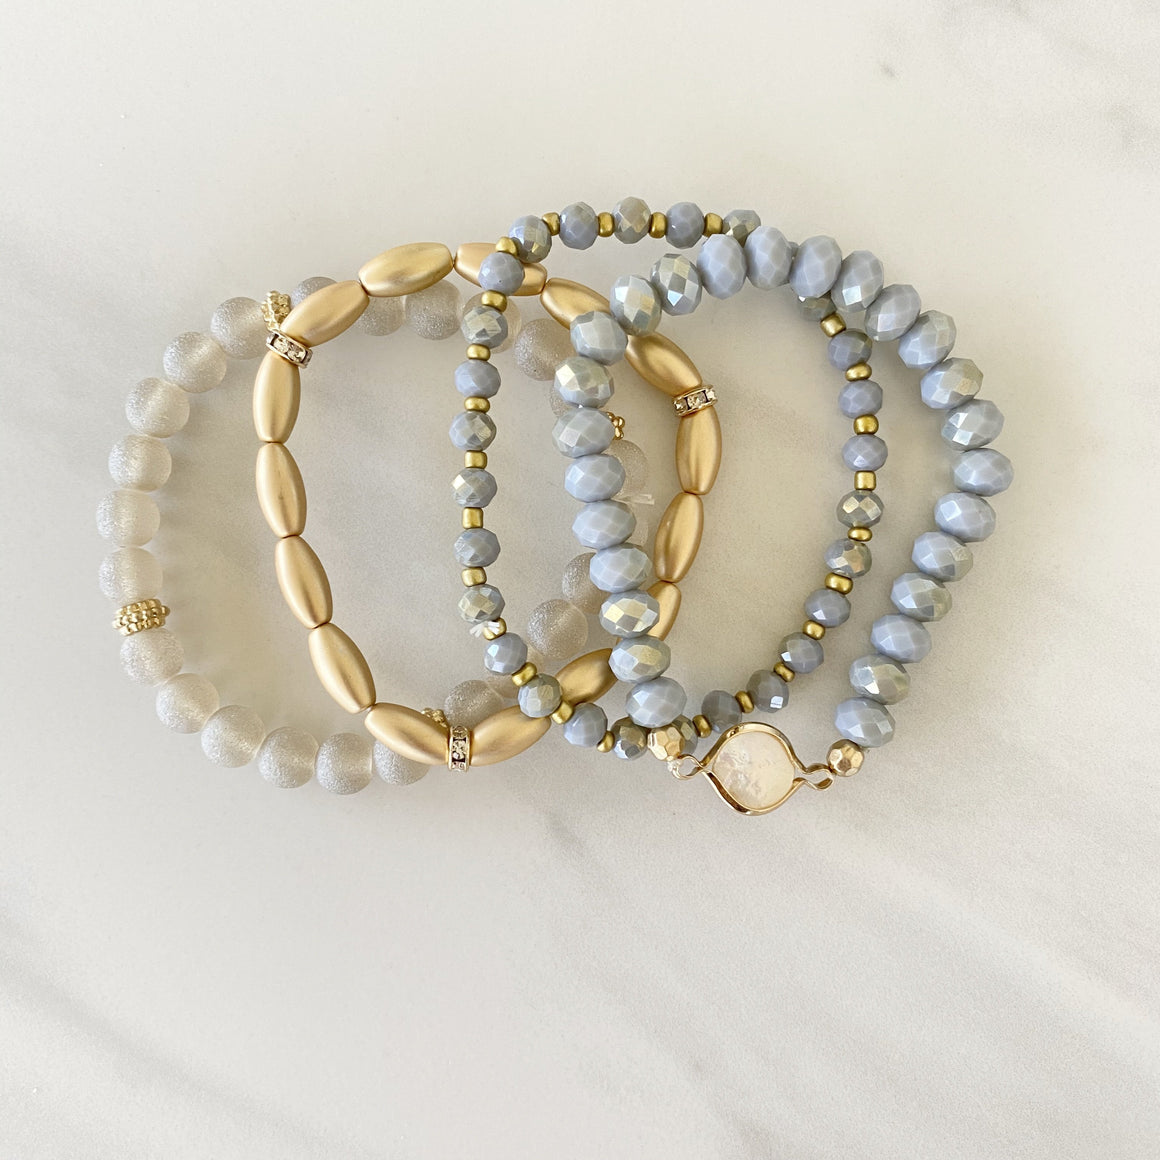 Up Your Game Stone Bracelet - Dainty Hooligan